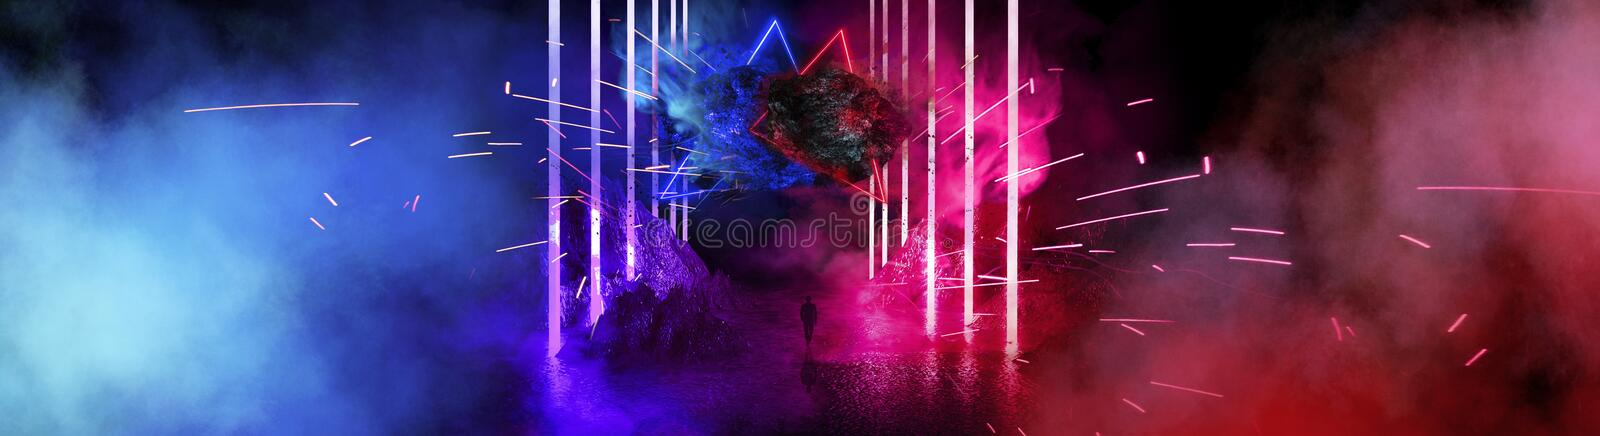 Space futuristic landscape. Fiery meteorites, sparks, smoke, light arches. Dark background with light element in the center. royalty free illustration